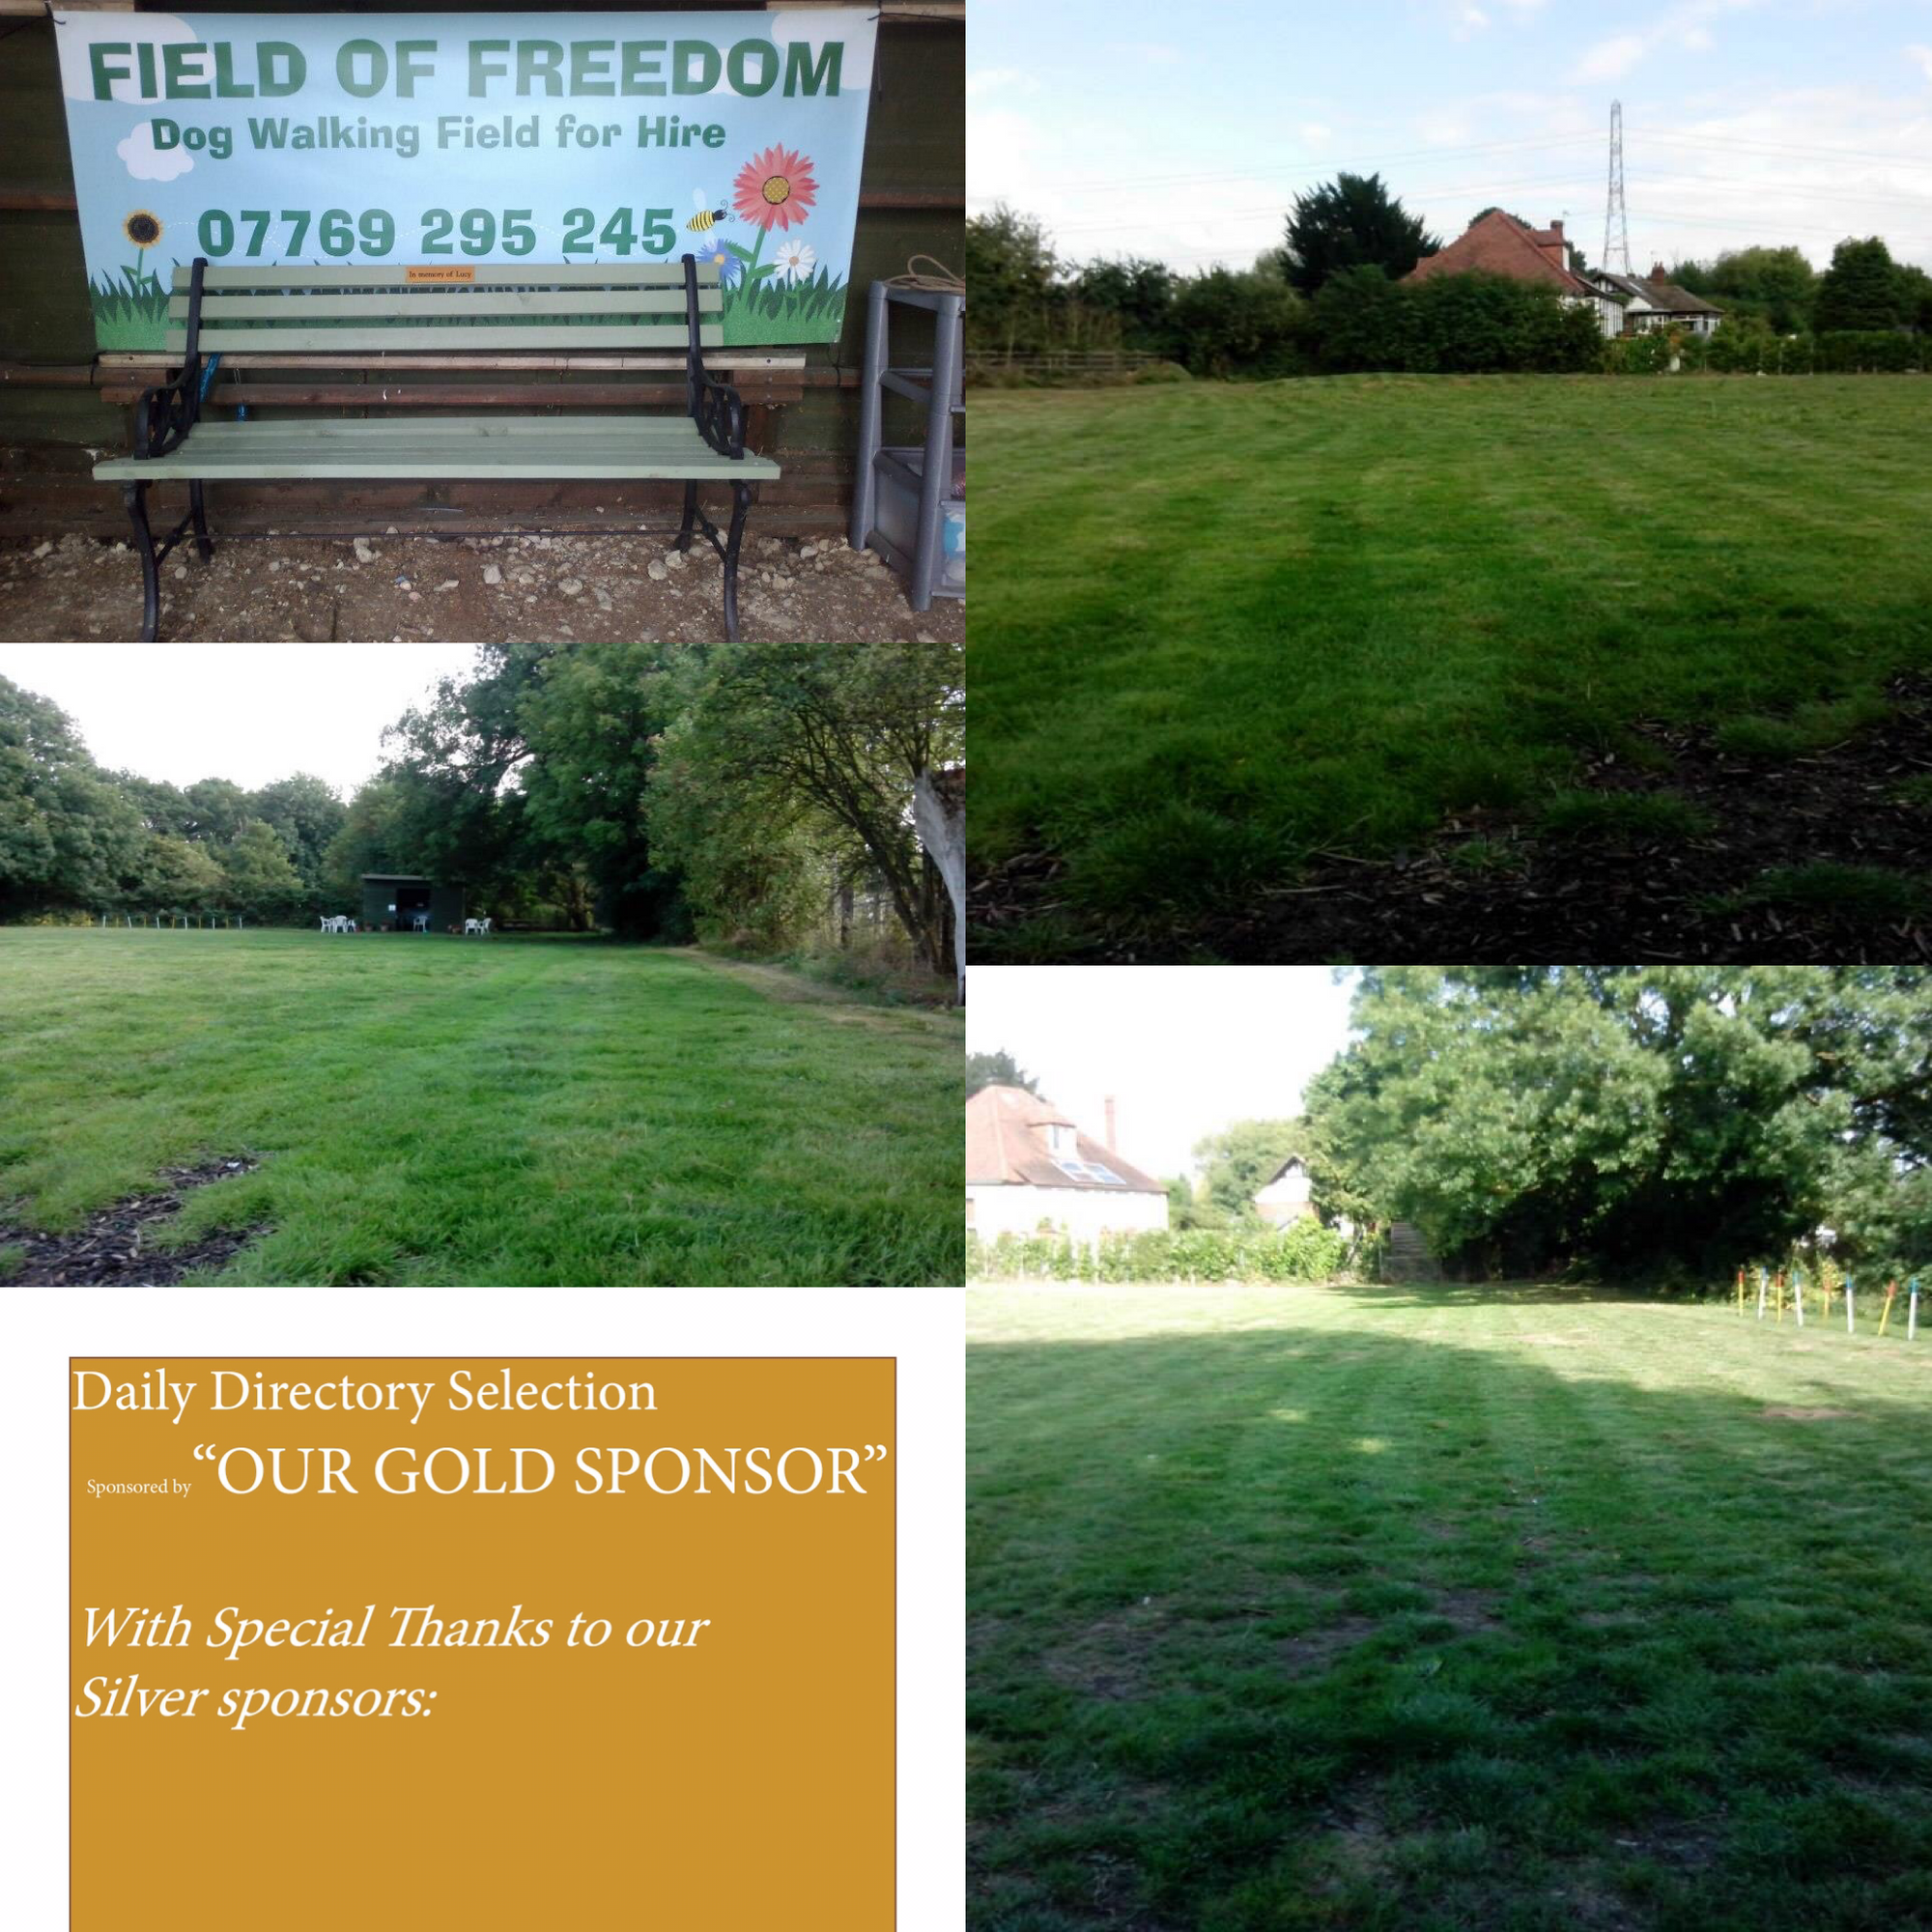 Field Of Freedom Chertsey Field Entrance Is From The Thames Path Car Park Is Dumsey Meadow Chertsey Bridge Road Kt16 8 Dog Walking Dog Play Area Chertsey